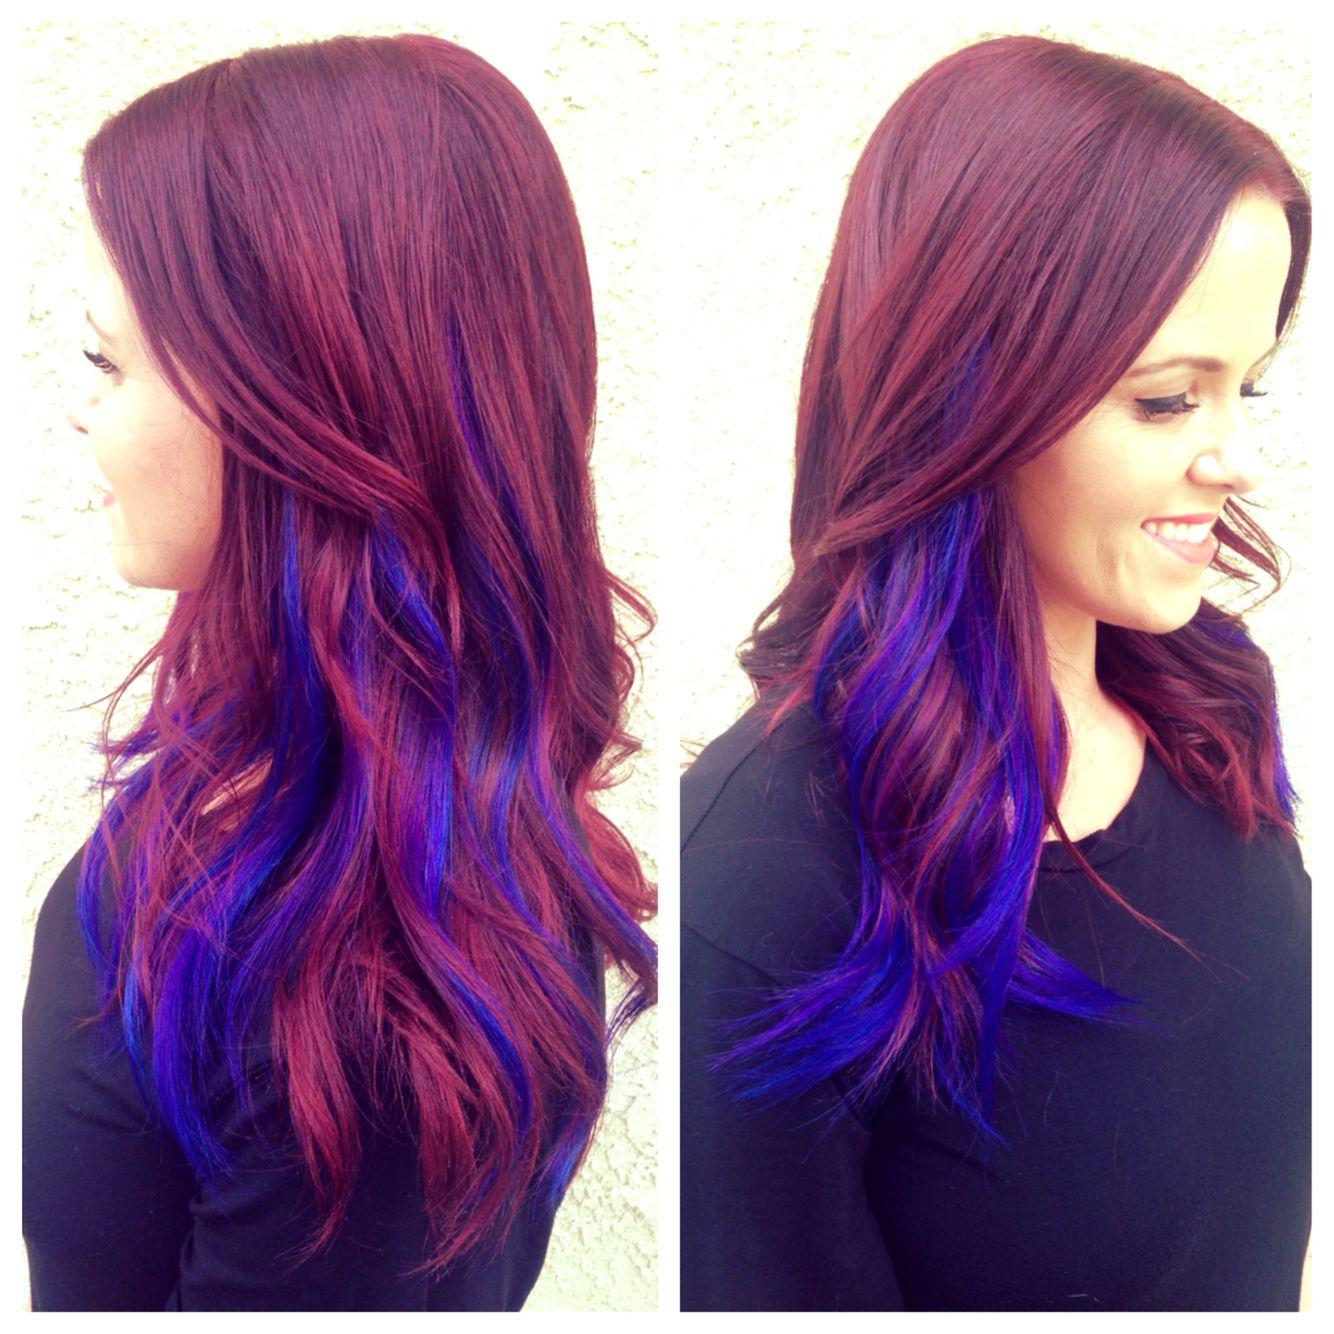 Violet Red Hair Cobalt Blue And Purple Extensions Done By The